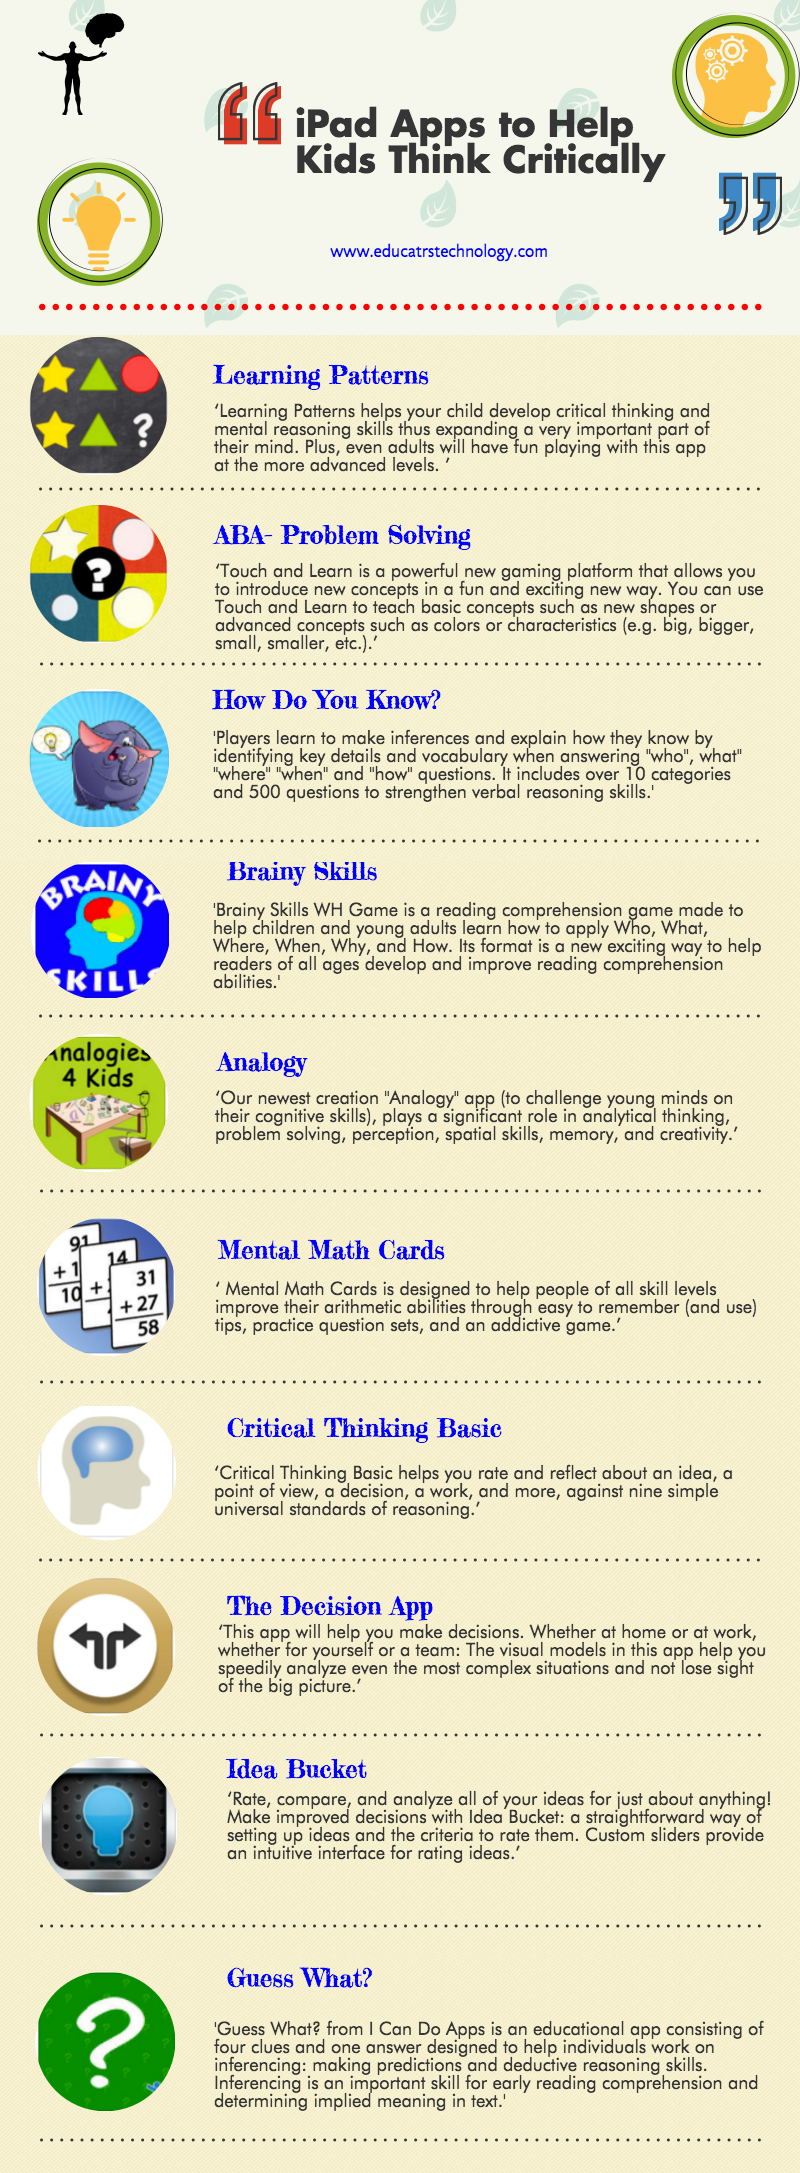 10 Very Good iPad Apps to Develop Students Critical Thinking Skills